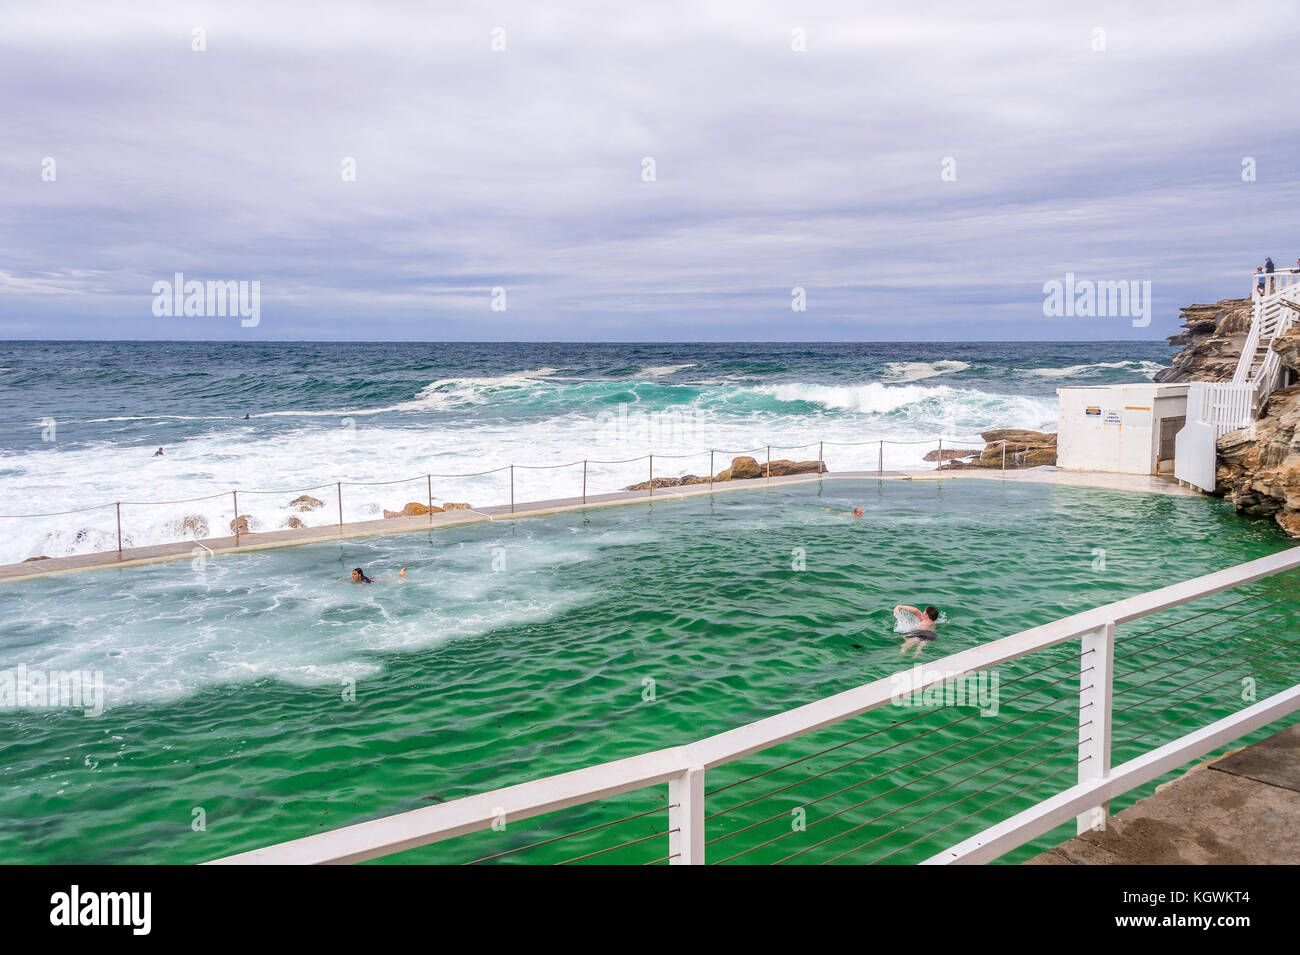 Big surf conditions at Bronte Beach rock pool in Sydney, NSW